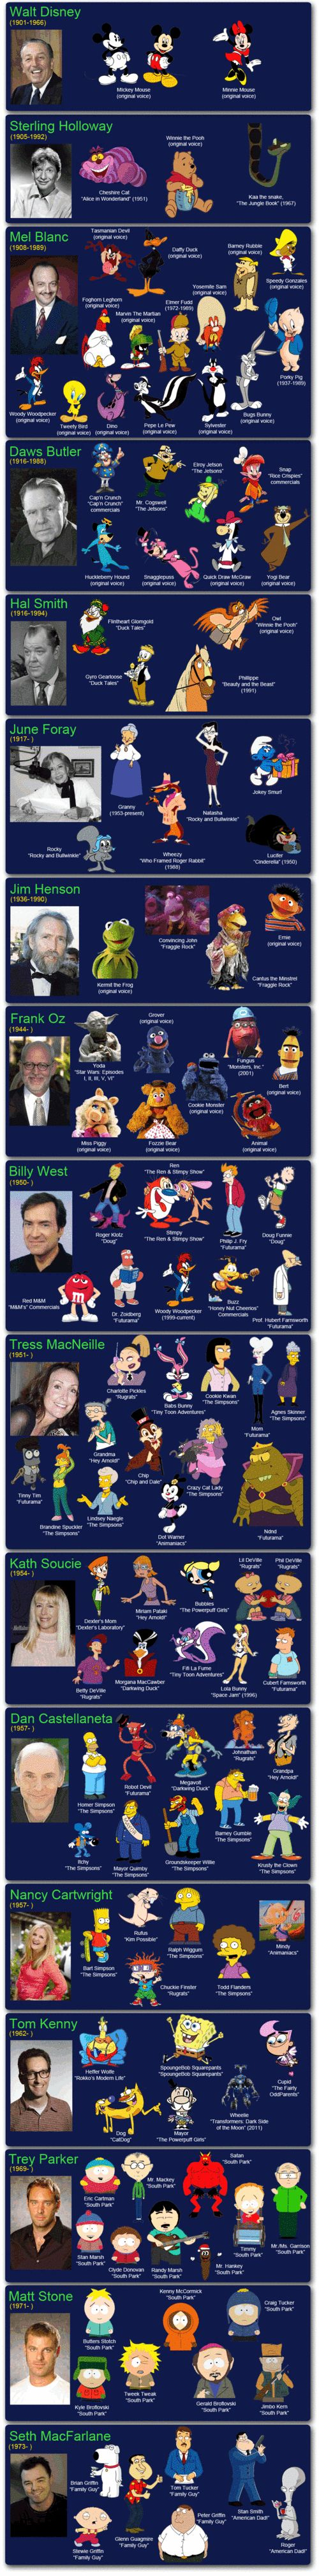 Some of these are obvious.  Others (Ren, Stimpy, and half the cast of Futurama) not so much.  Left off, Mike Judge (obvious reasons) and Lauren Tom (who is both Connie from King of the HIll and Amy from Futurama).